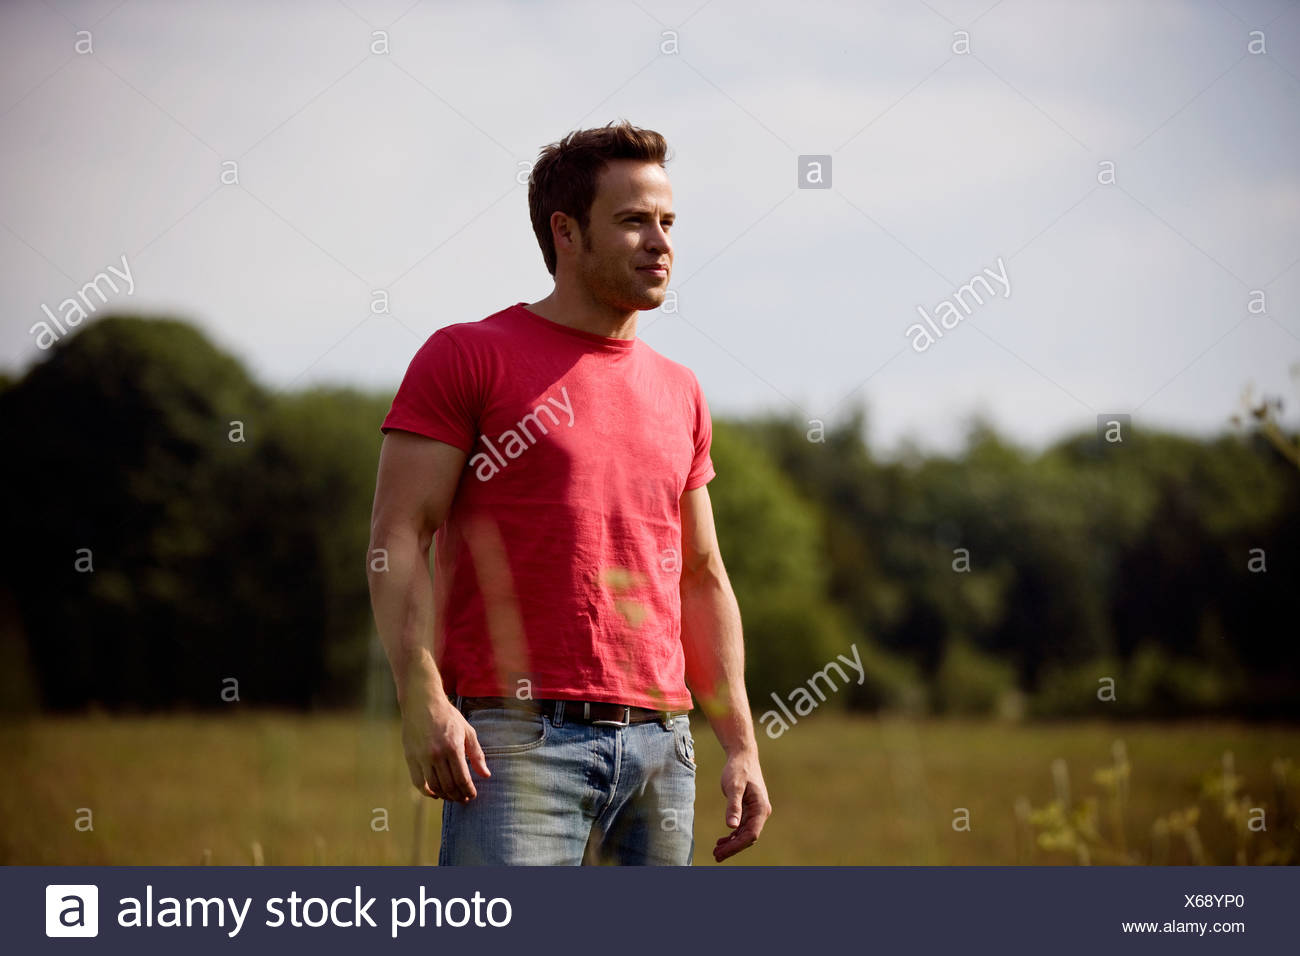 A young man standing in a field in summertime - Stock Image